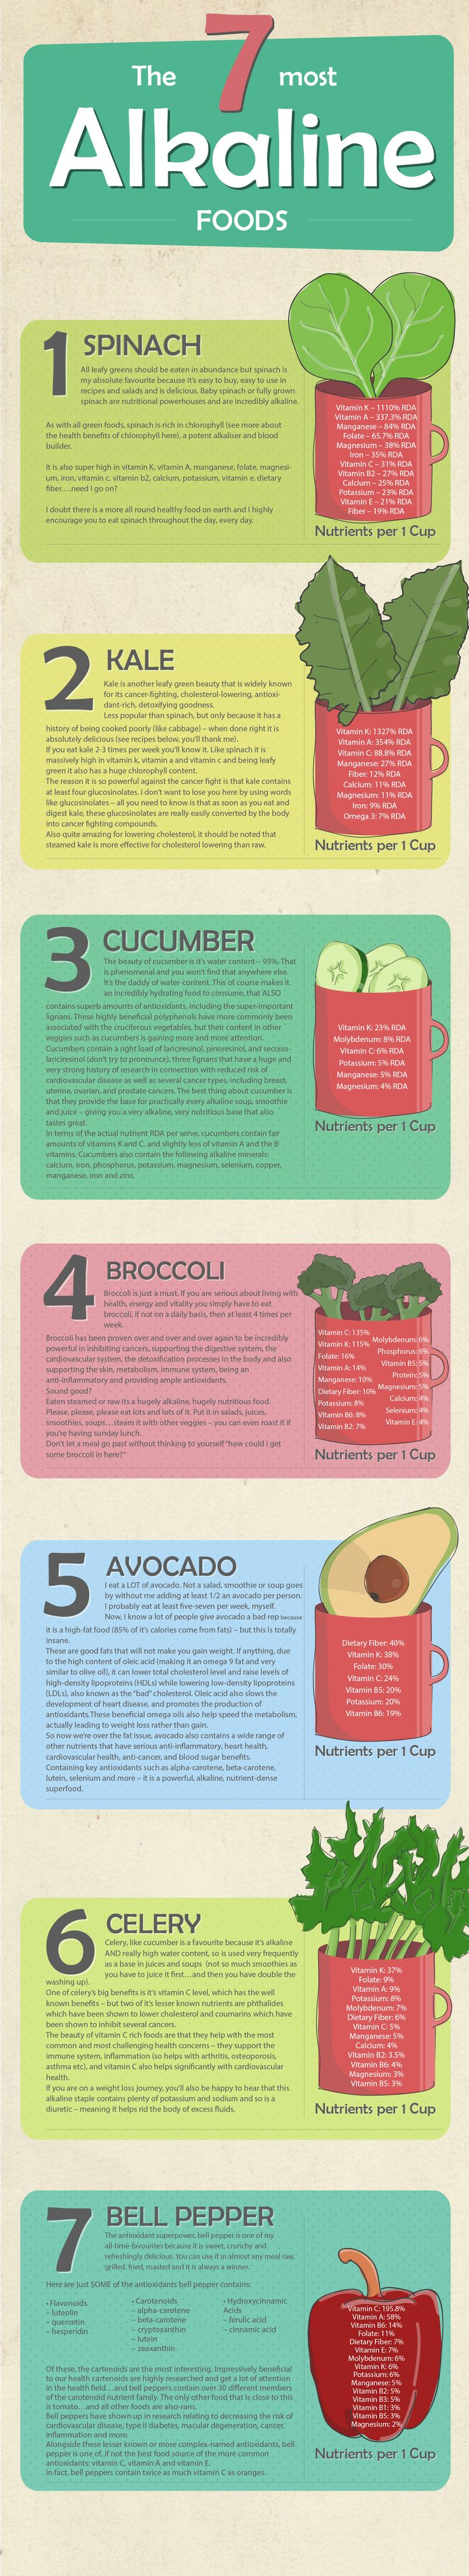 The 7 most Alkaline foods Infographic is one of the best Infographics created in the Food category. Check out The 7 most Alkaline foods now!